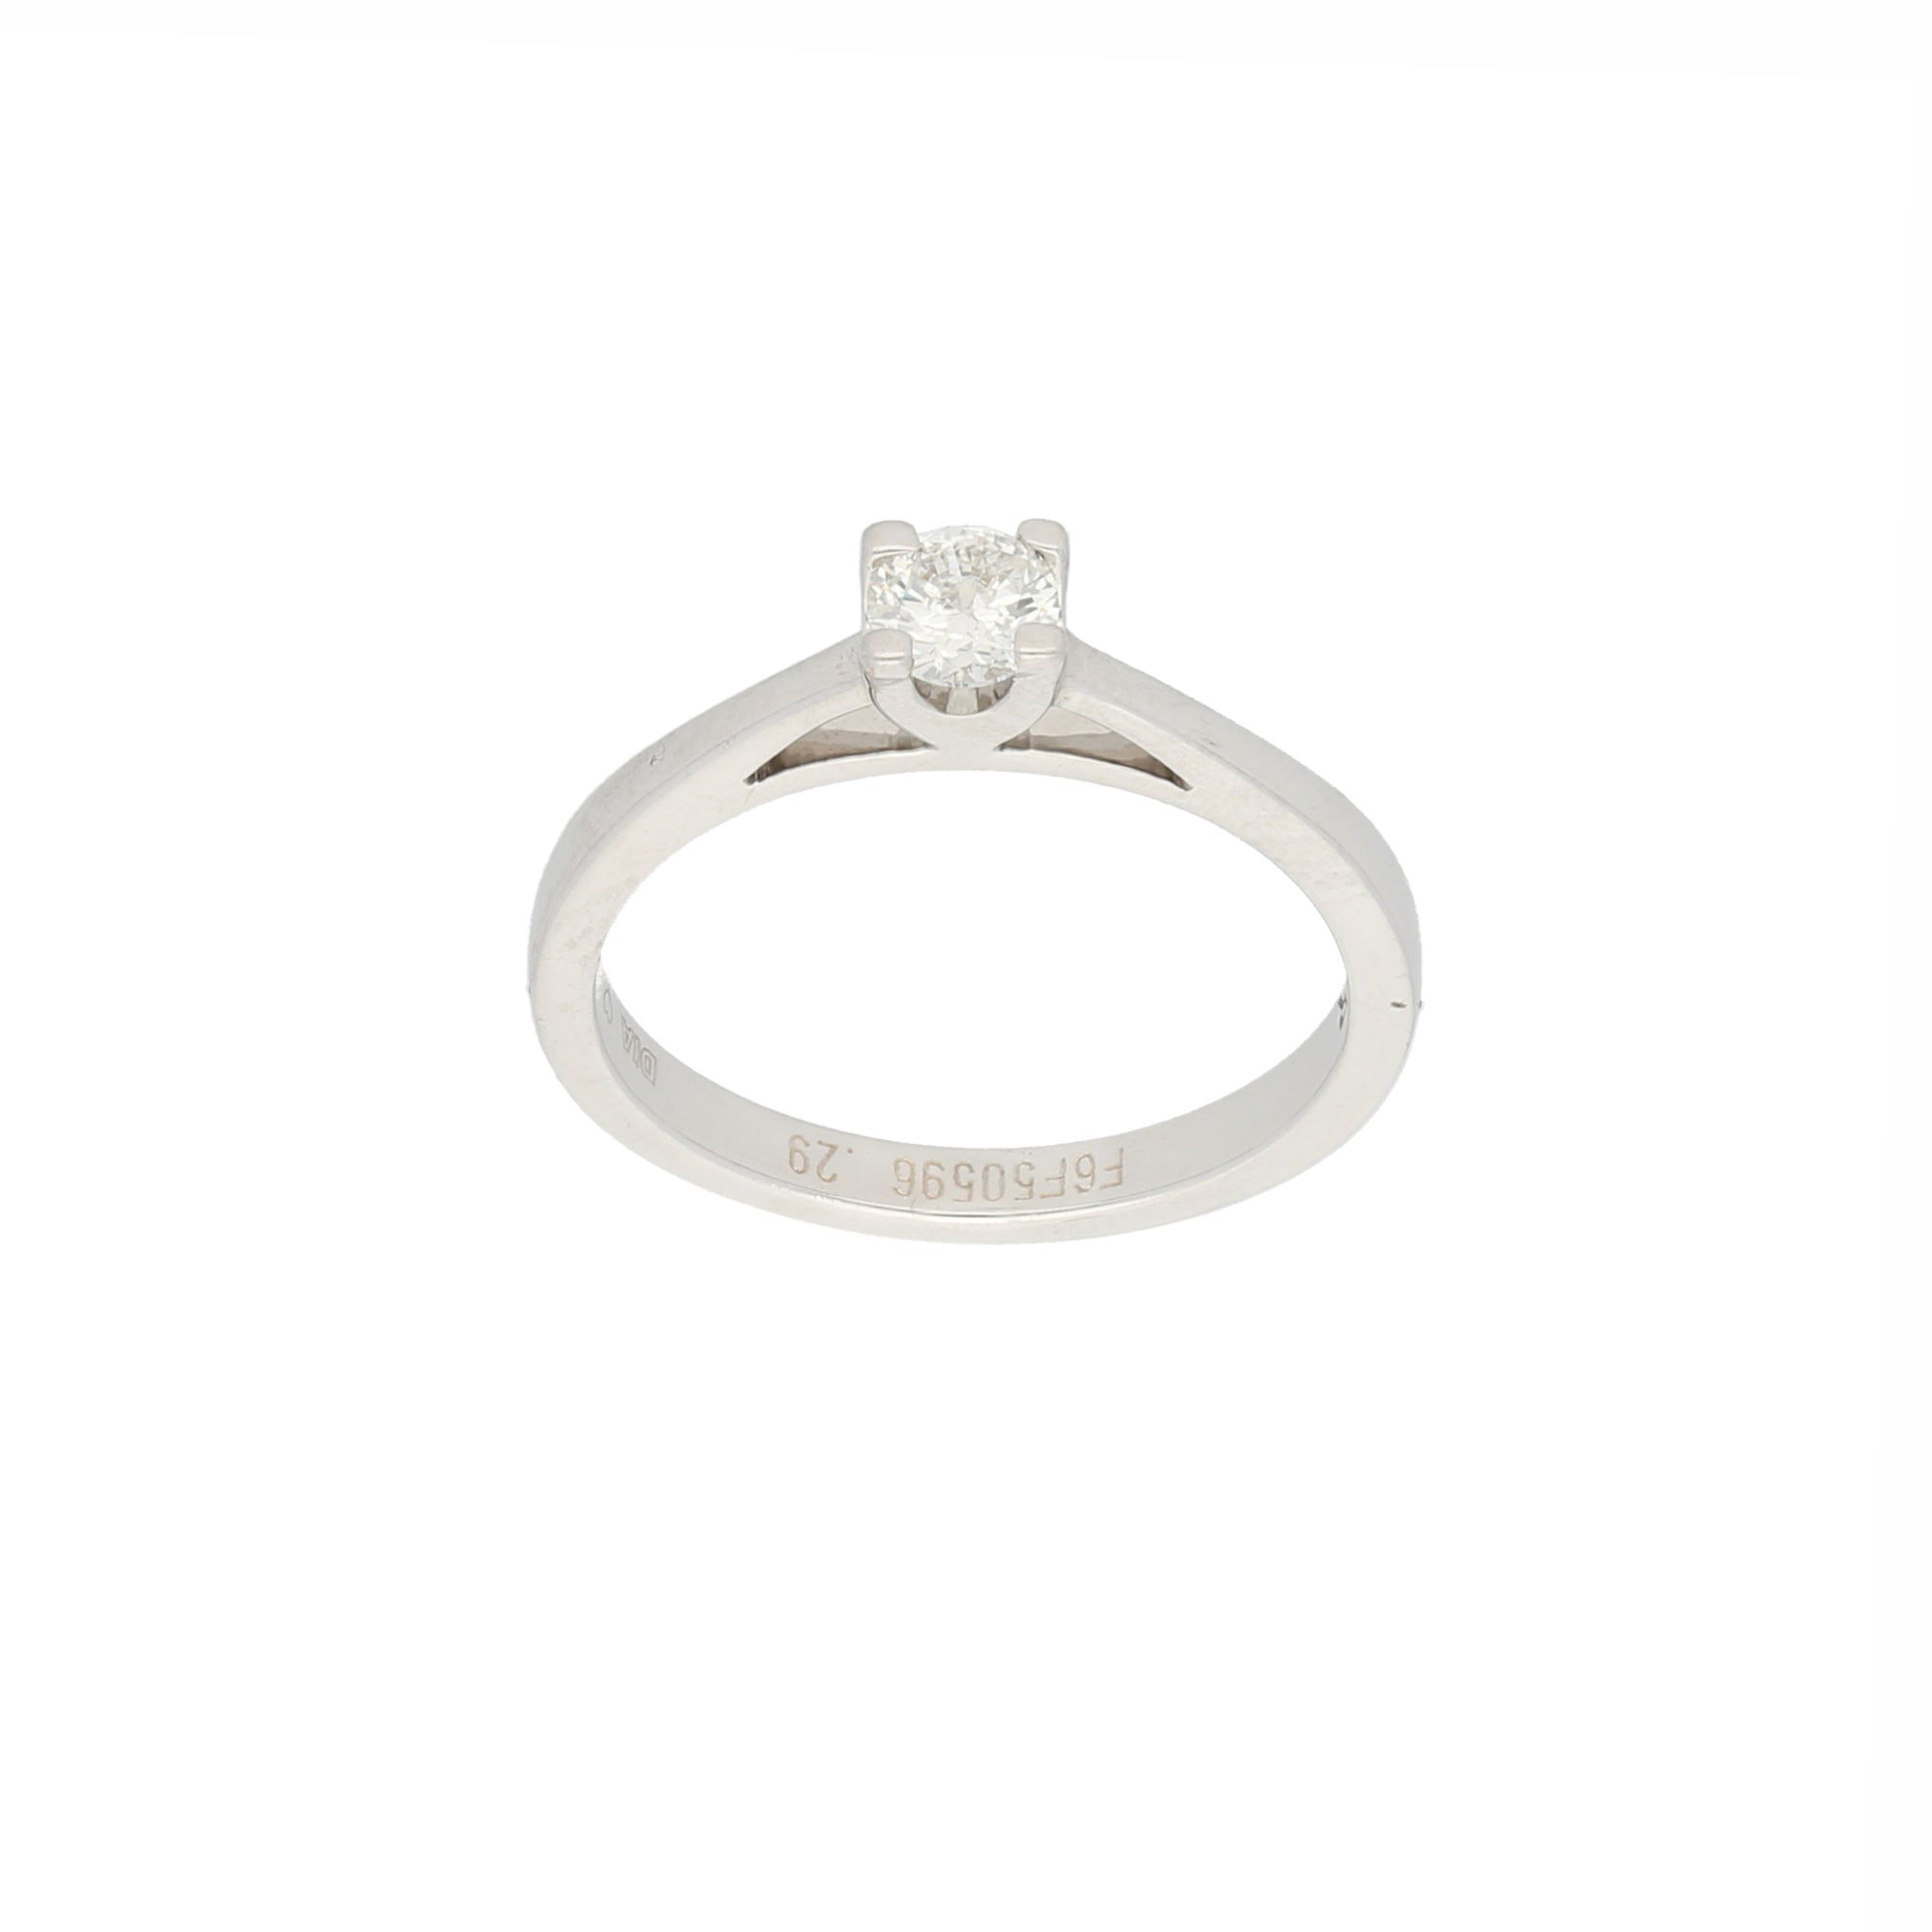 18ct White Gold Diamond Ladies Solitaire Ring Size M